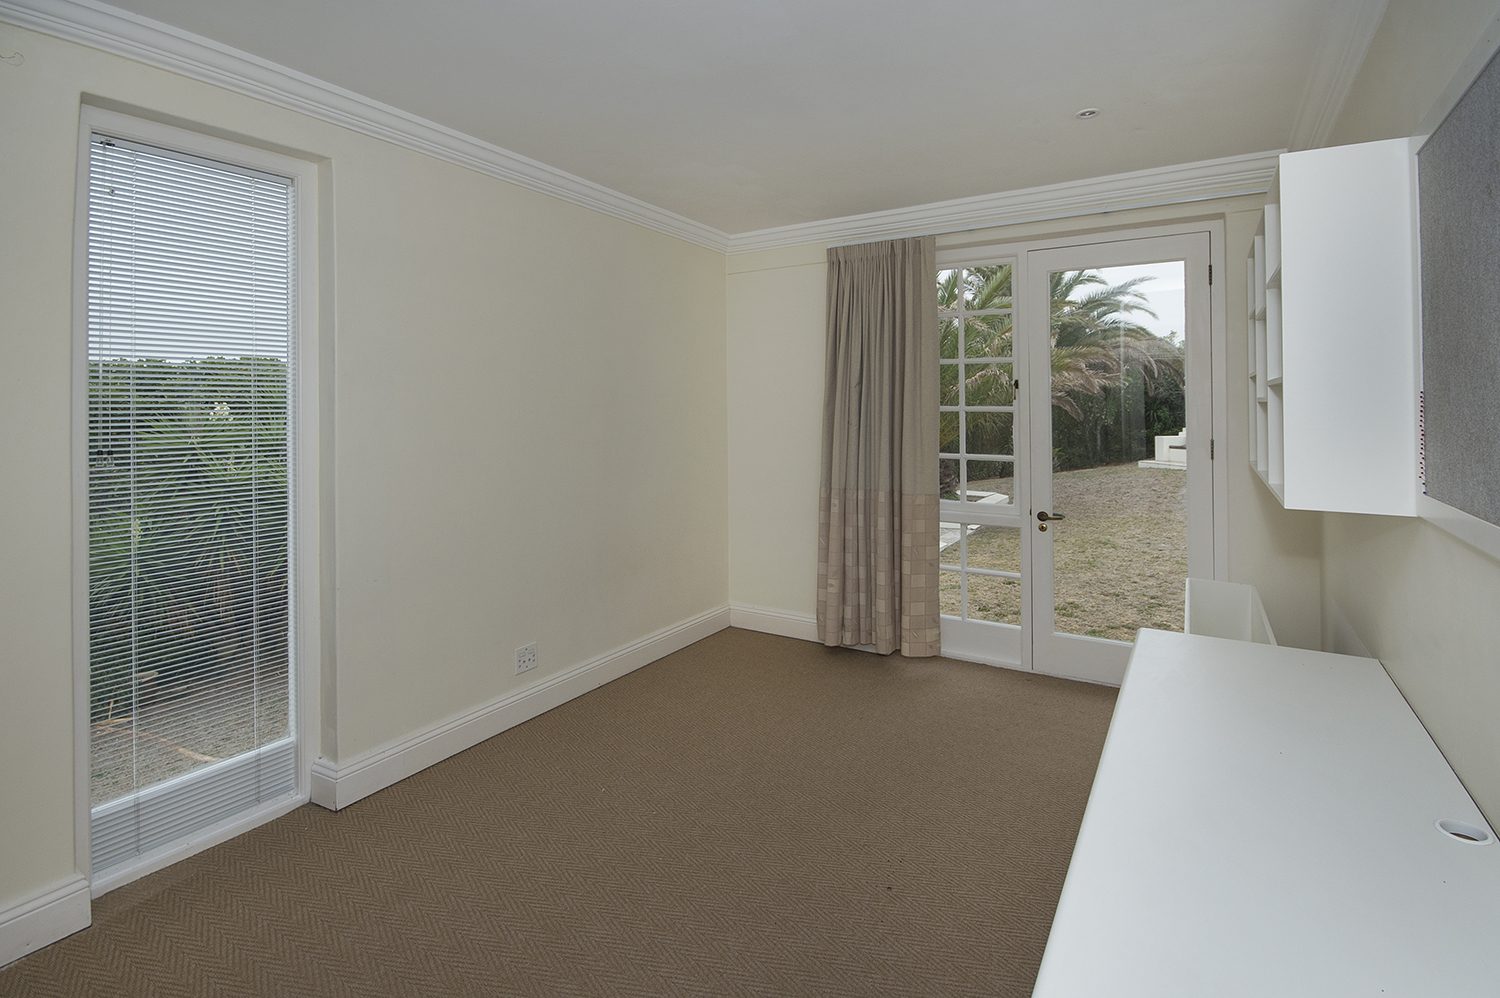 4 Bedroom House for sale in Mill Park ENT0024309 : photo#13